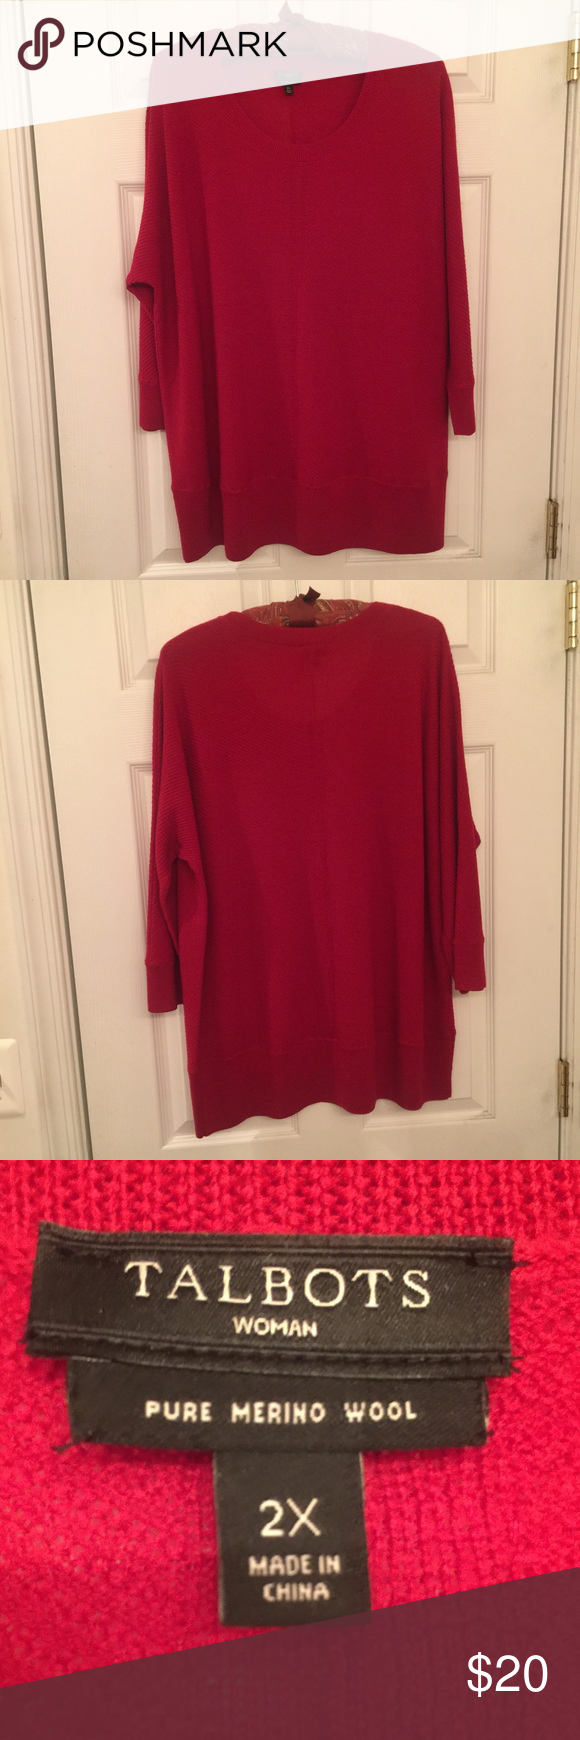 NEW Talbots Woman Merino Wool Sweater, Size 2X NWOT Talbots Woman sweater in red, Size 2X. 100% merino wool in looser knit, perfect for Spring. Never worn. Machine washable. Talbots Sweaters Crew & Scoop Necks